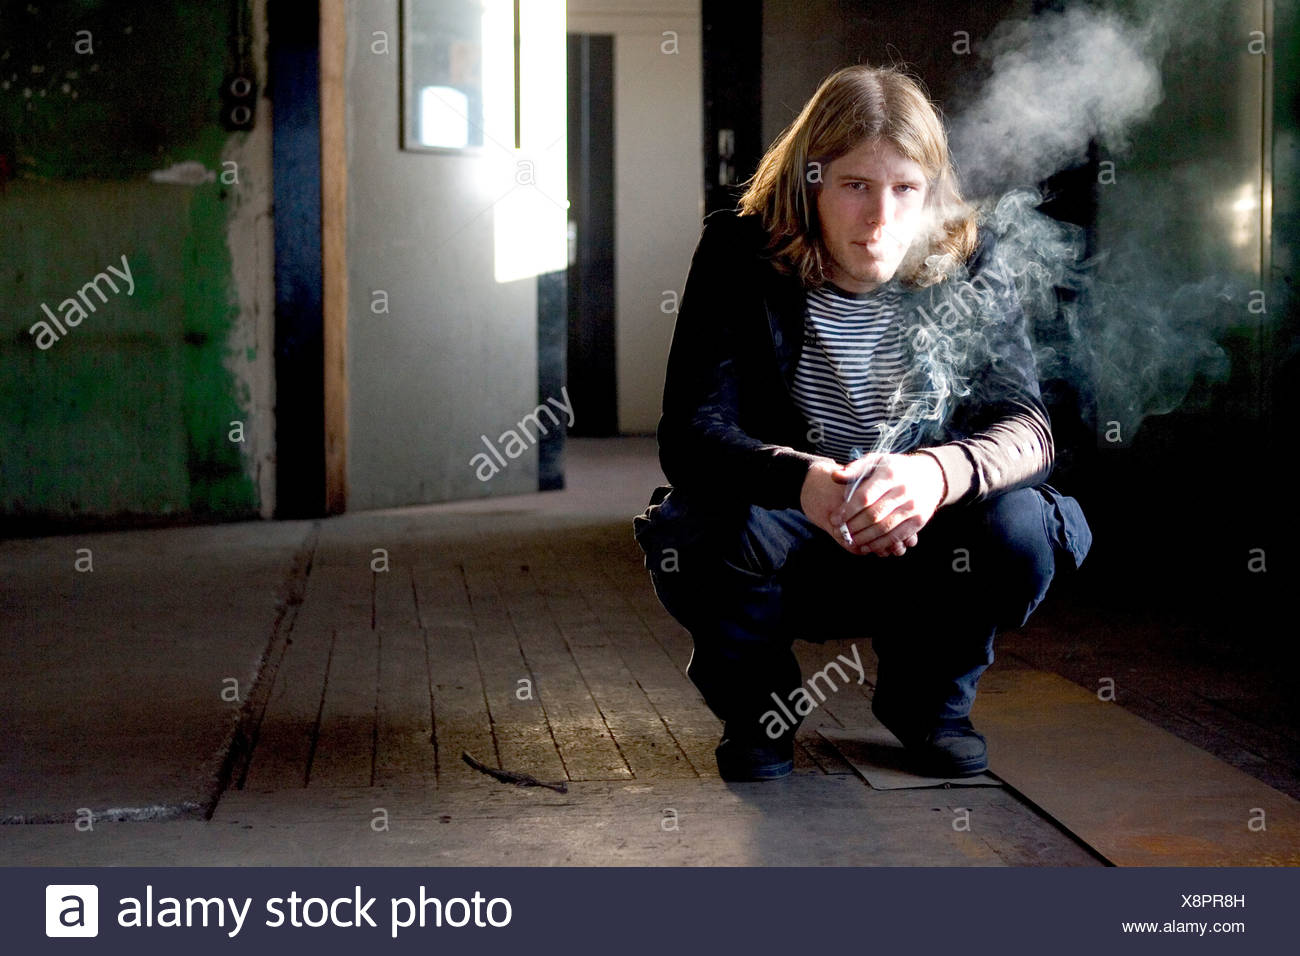 Young man smoking a cigarette in an empty warehouse, Zurich, Switzerland. - Stock Image